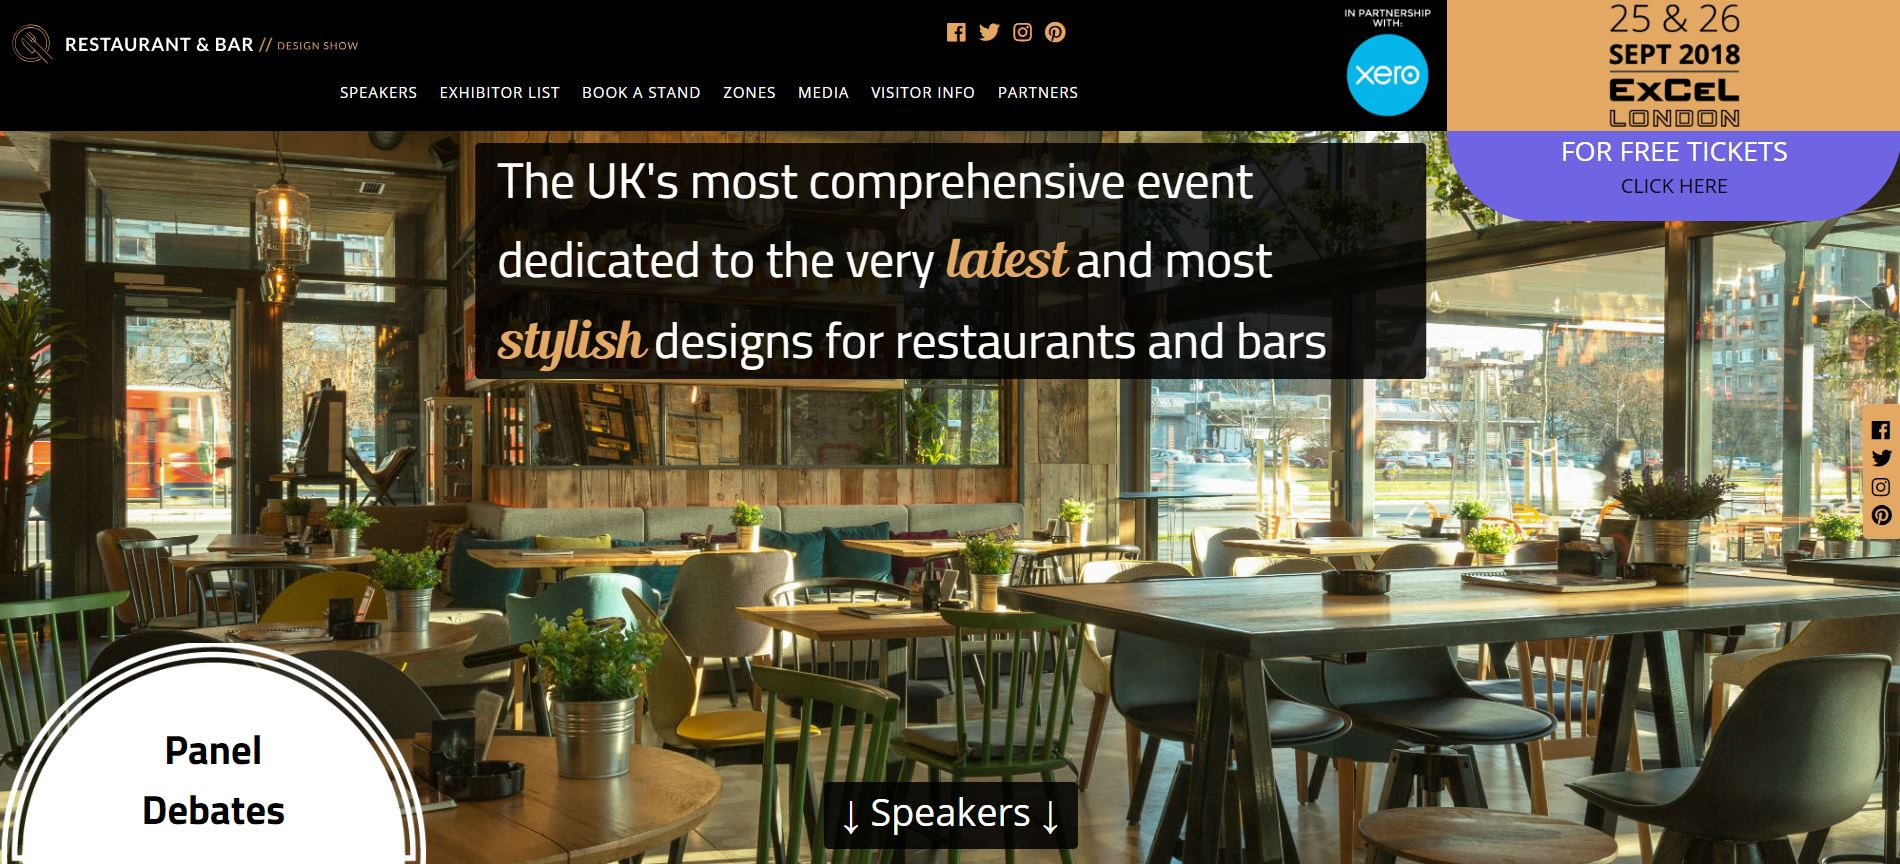 Restaurant bar design show launch new website premier